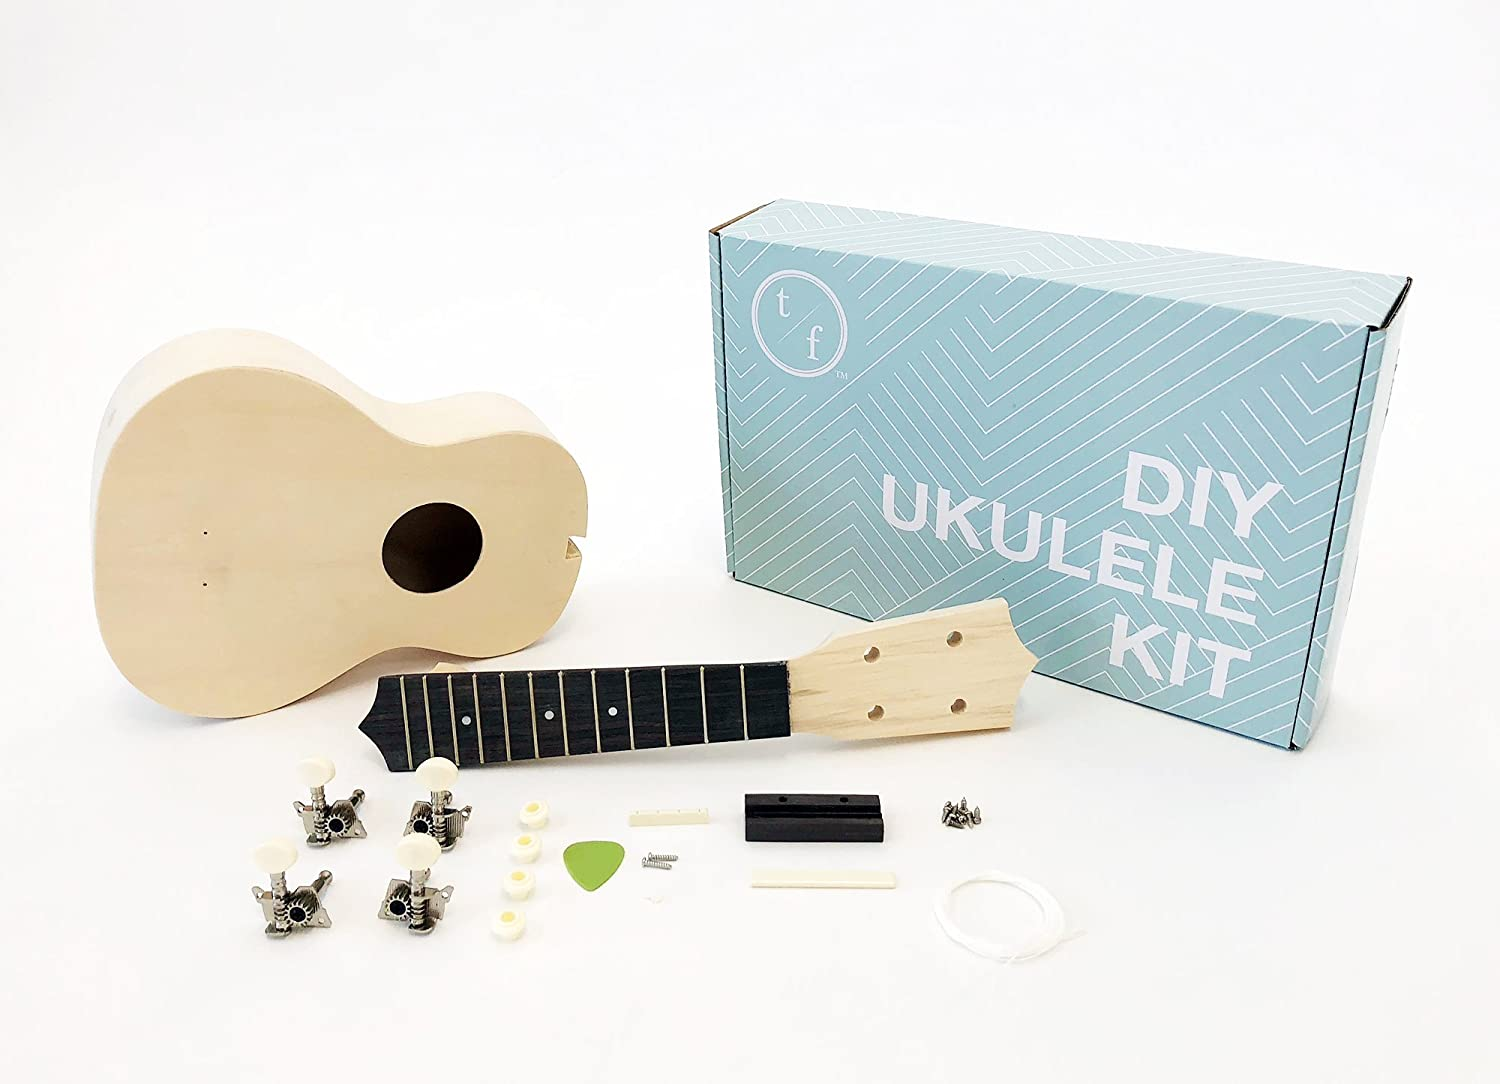 Sounds Great Build-It-Yourself DIY Soprano Ukulele Kit A Fun and Easy Project